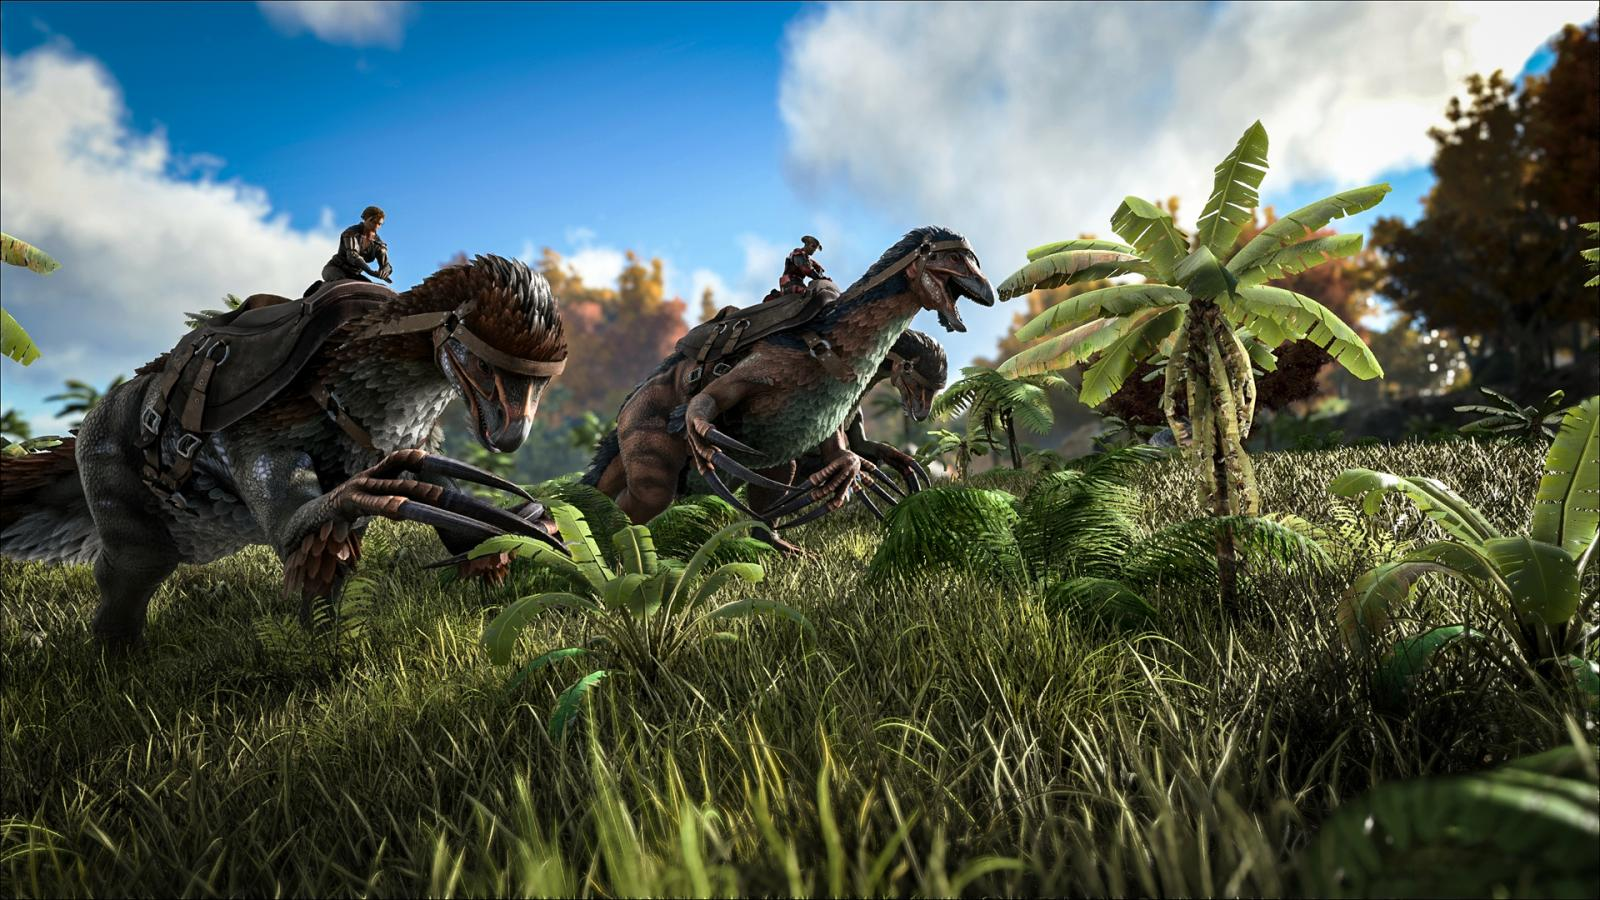 Ark Survival Evolved V253 Guide How To Tame Find New Dinos Like Troodon Tusoteuthis Player One So far i have only farmed eurypterids with my mosa to get black pearls. ark survival evolved v253 guide how